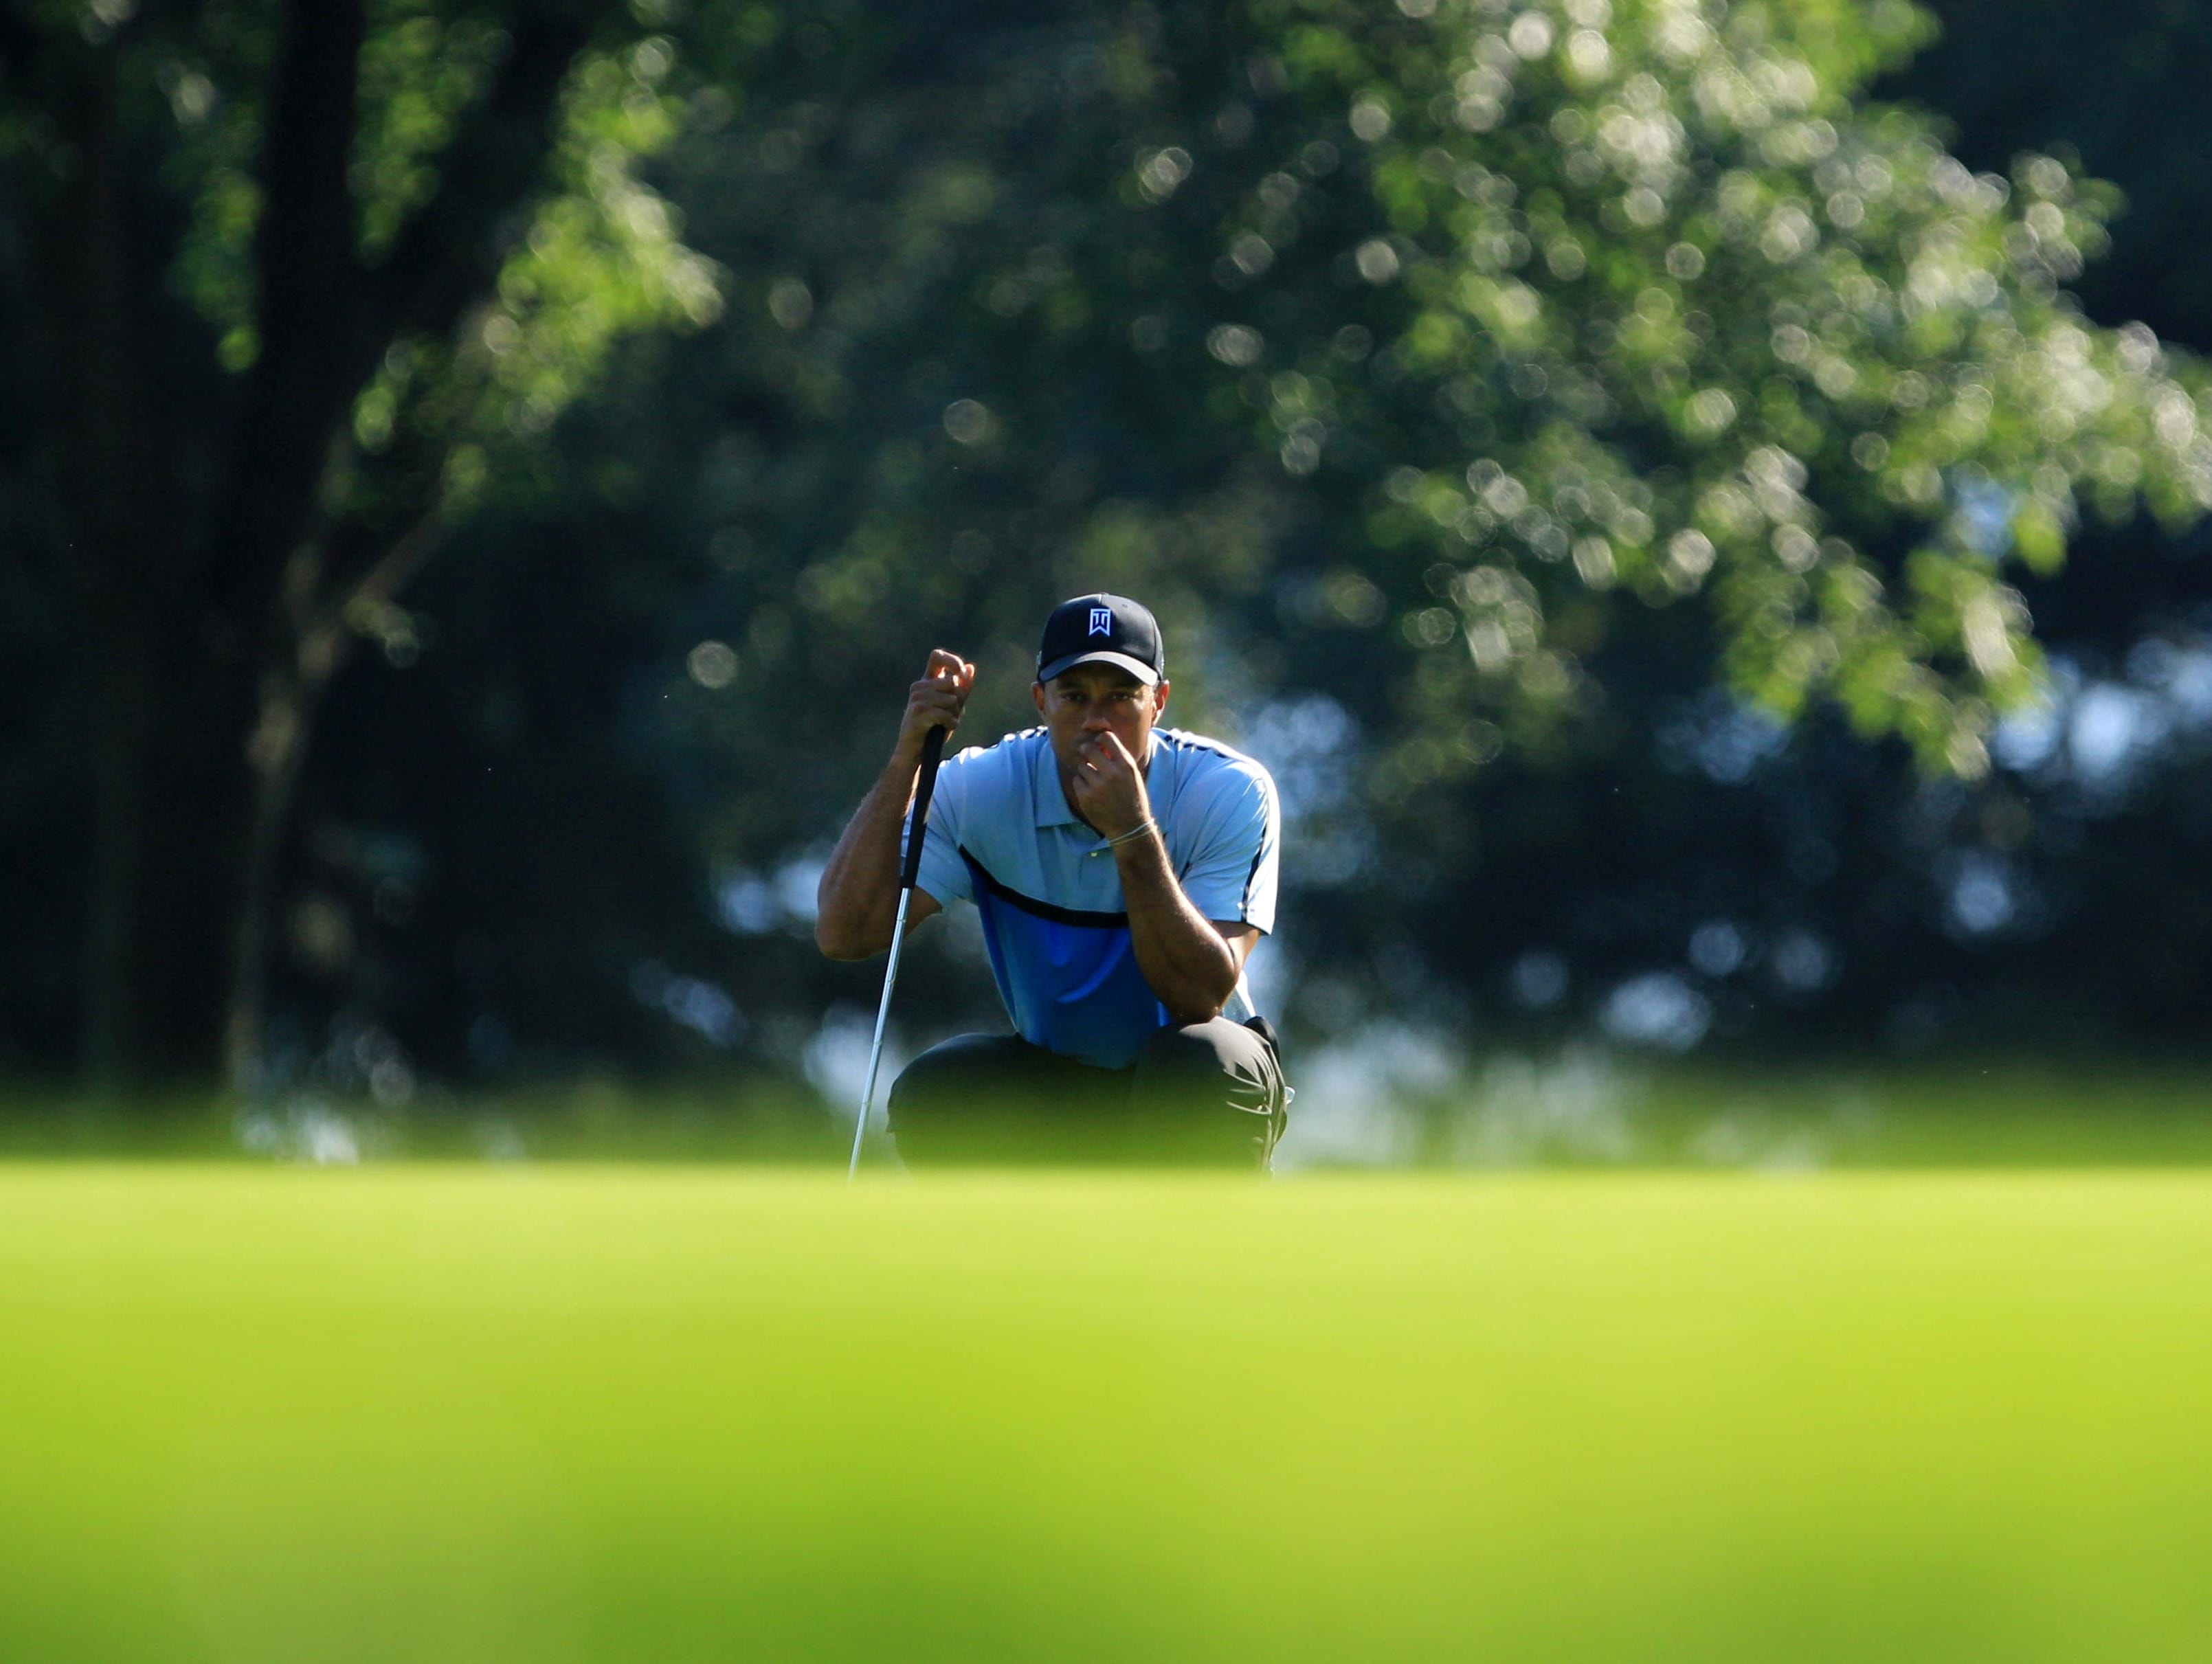 Tiger Woods lines up a putt on the 10th green, his first hole of the tournament.